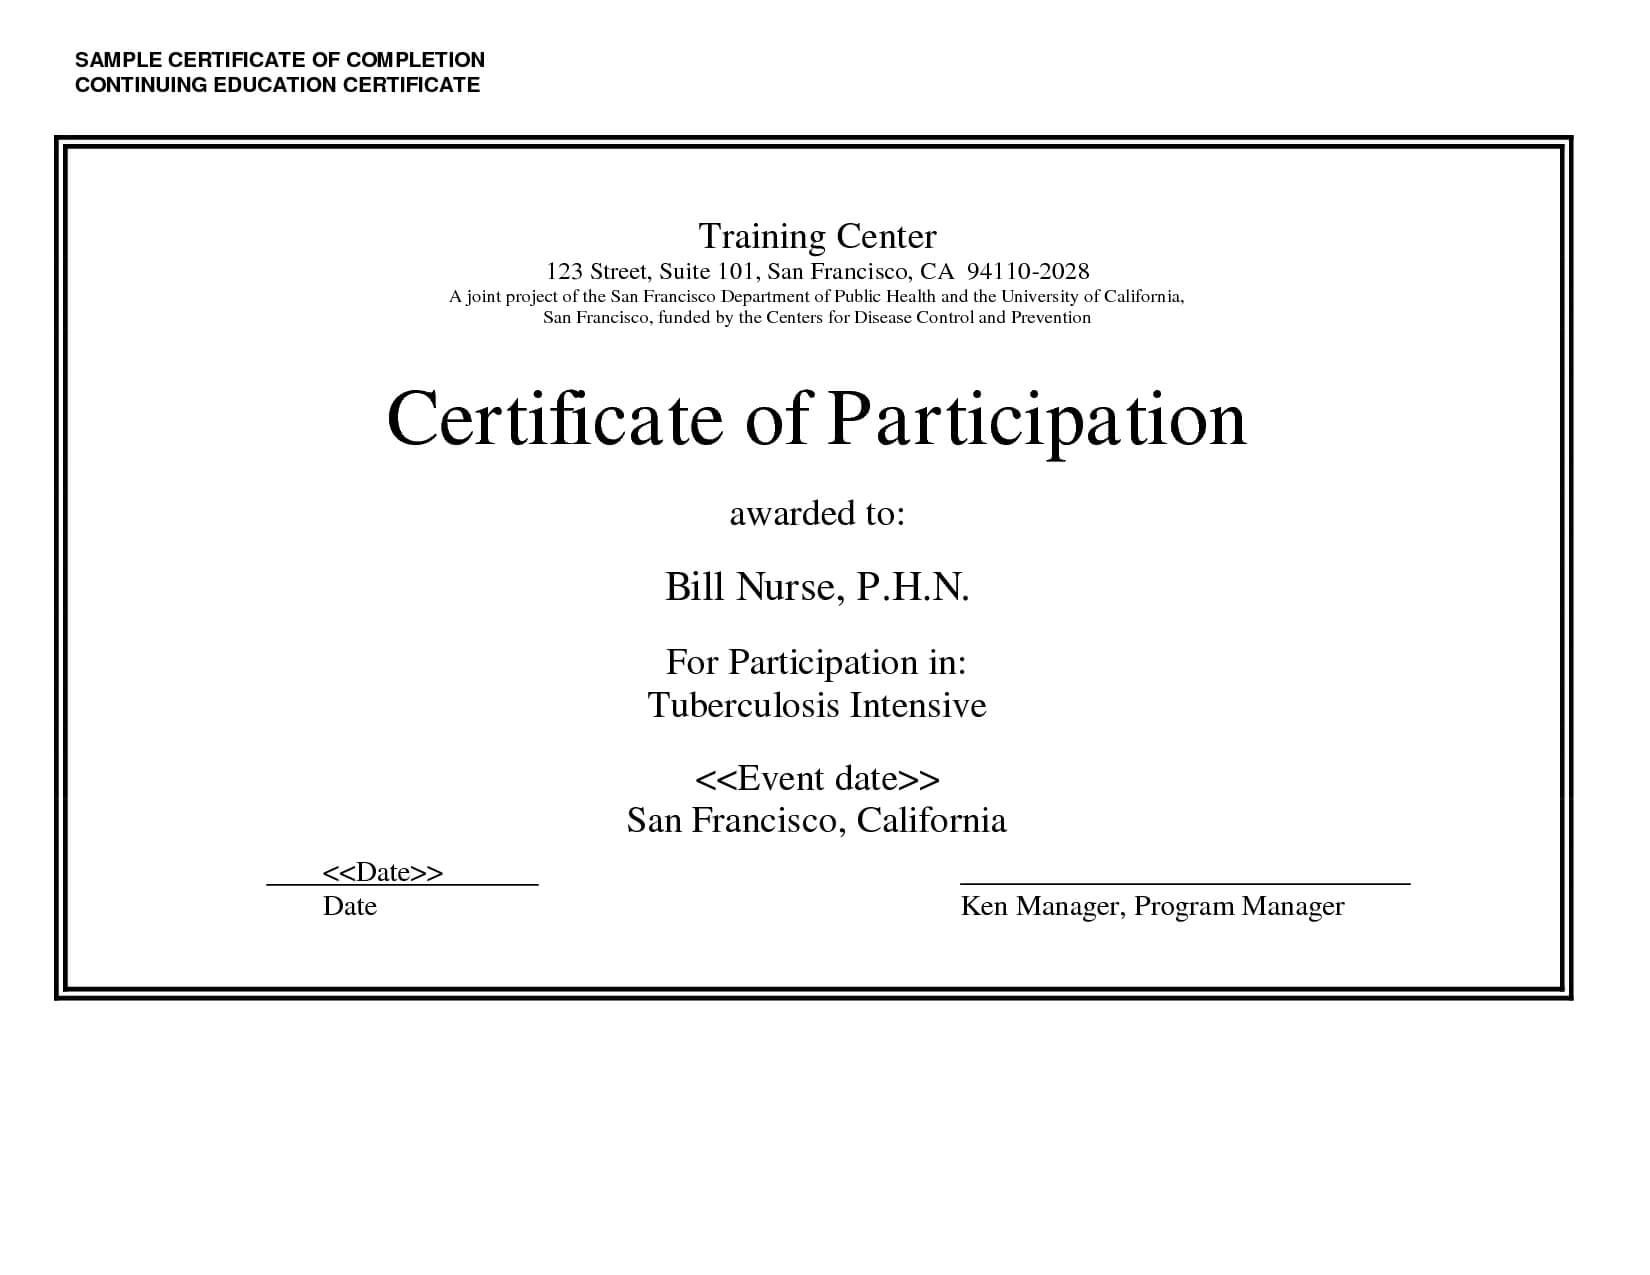 Sample Certificate Of Completion Continuing Education Intended For Continuing Education Certificate Template